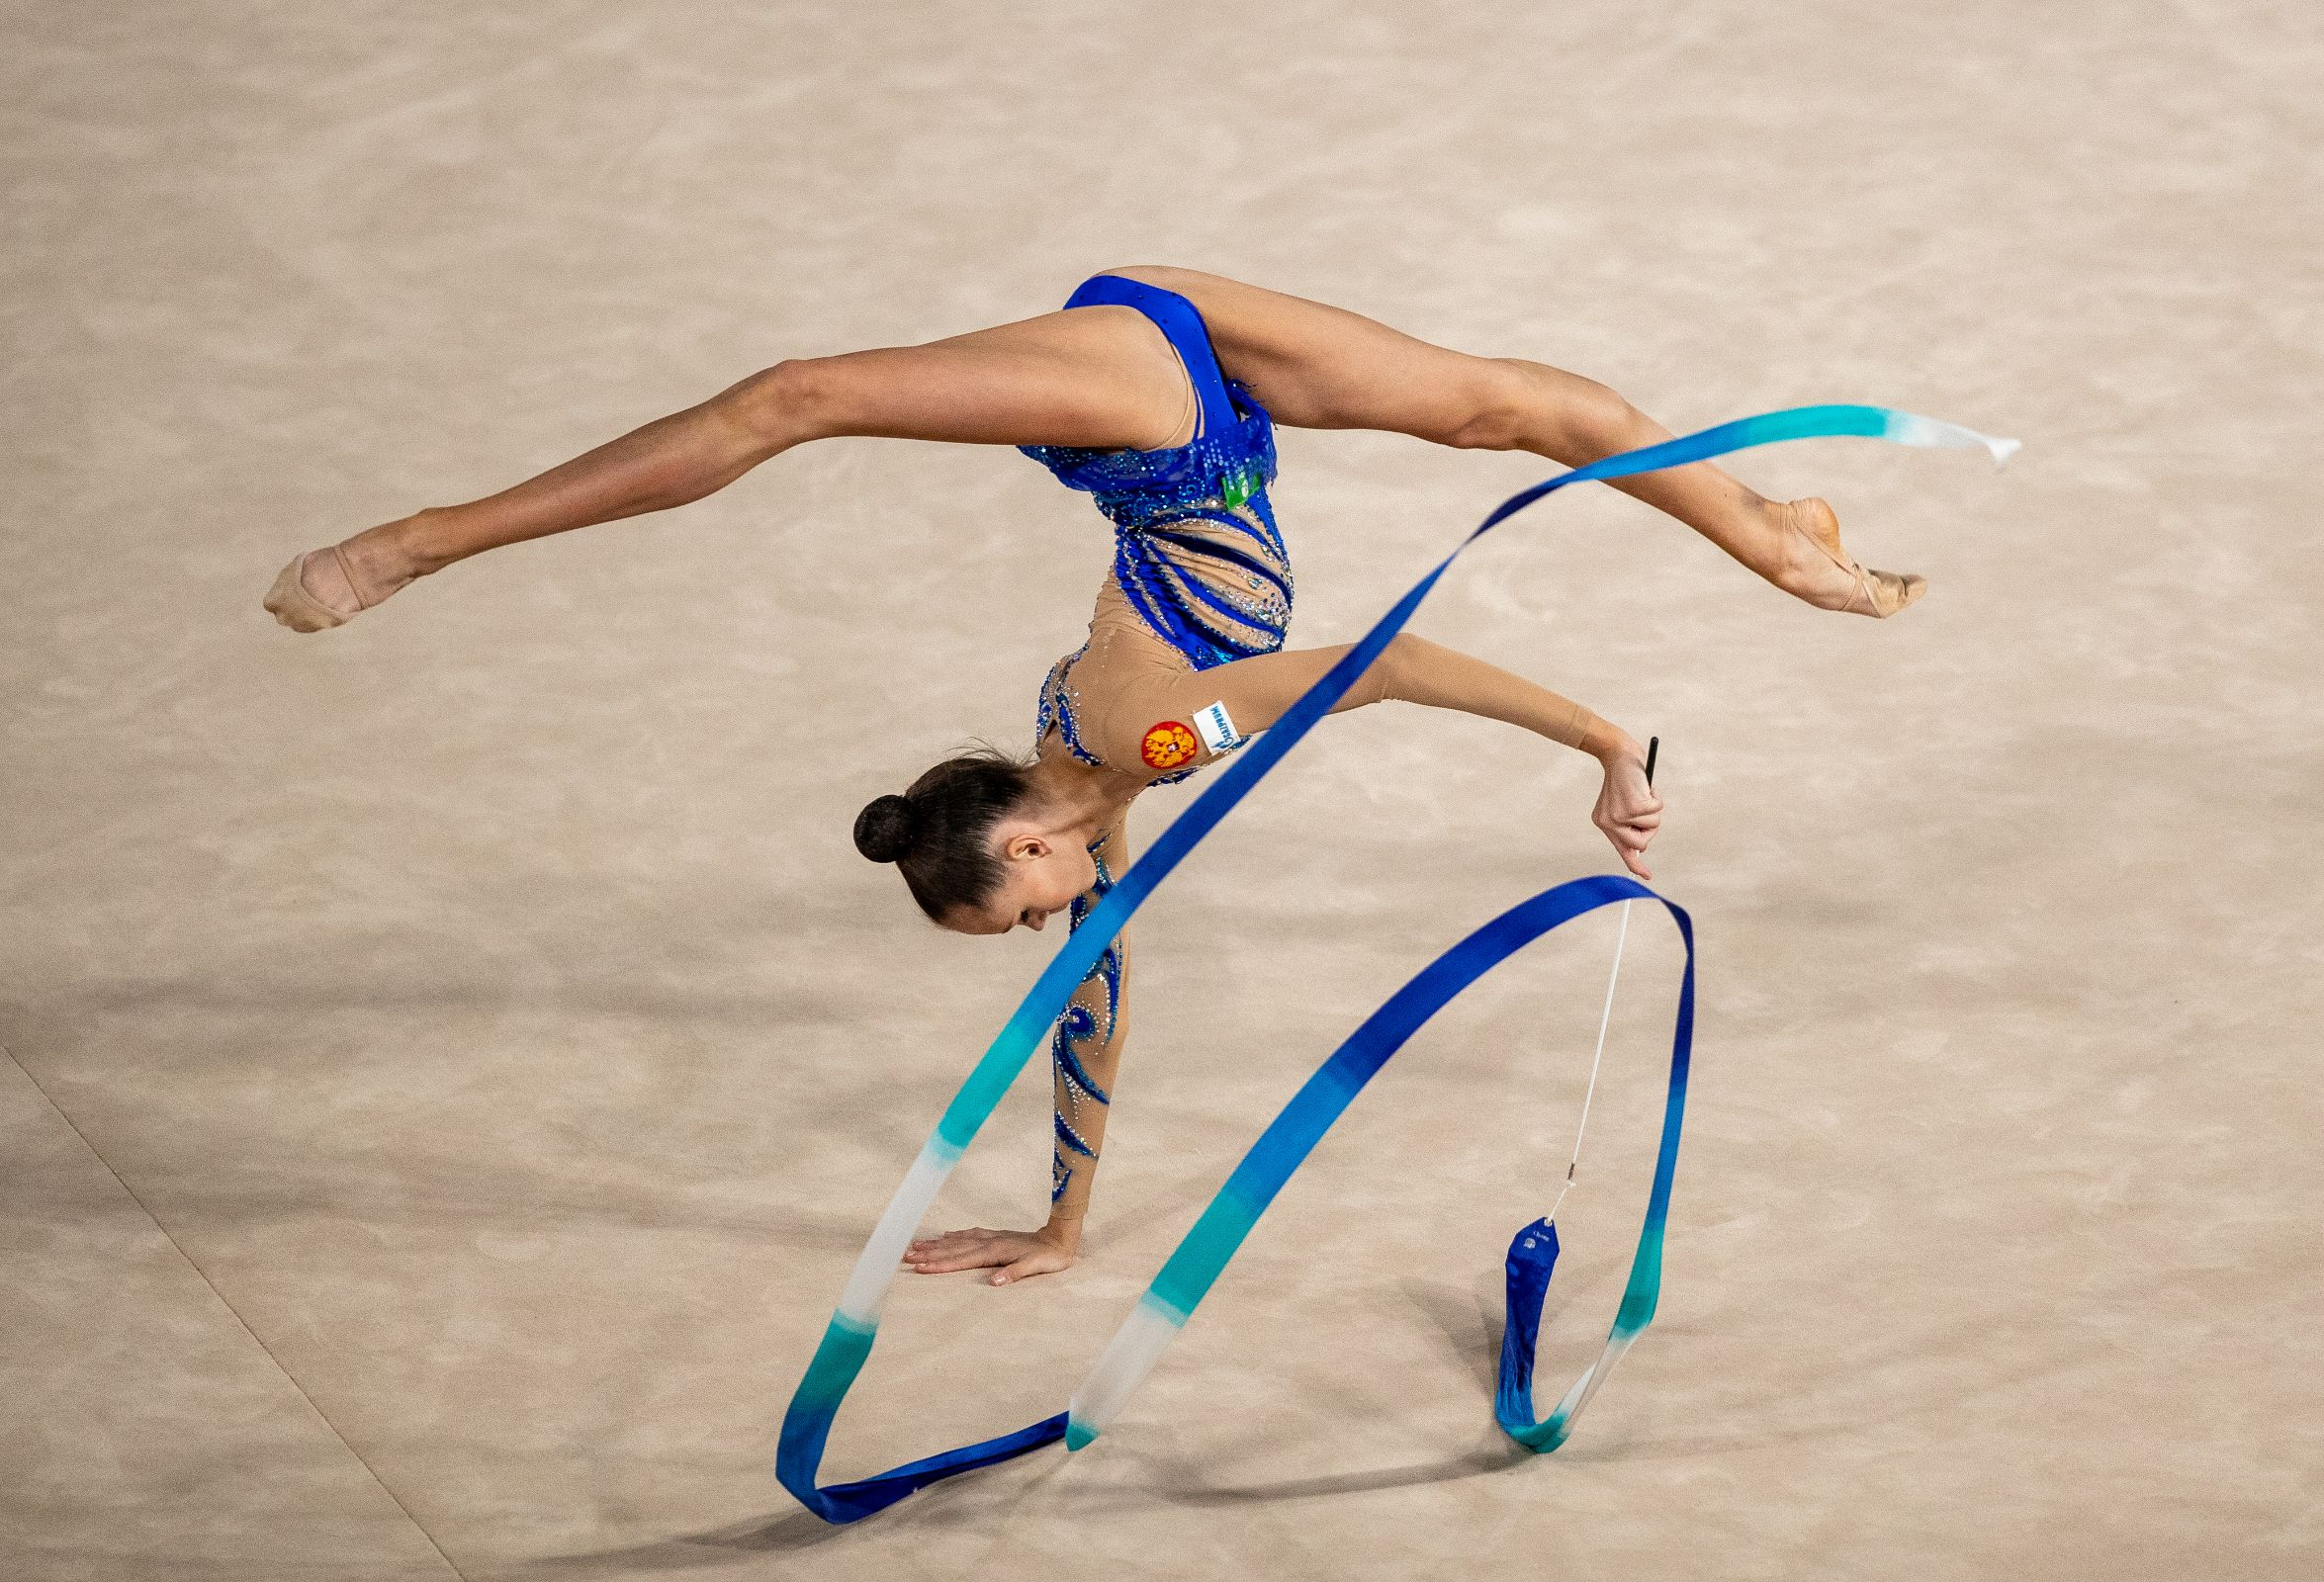 Buenos Aires 2018 - Rhythmic Gymnastics - Women's Rhythmic Individual All-Around